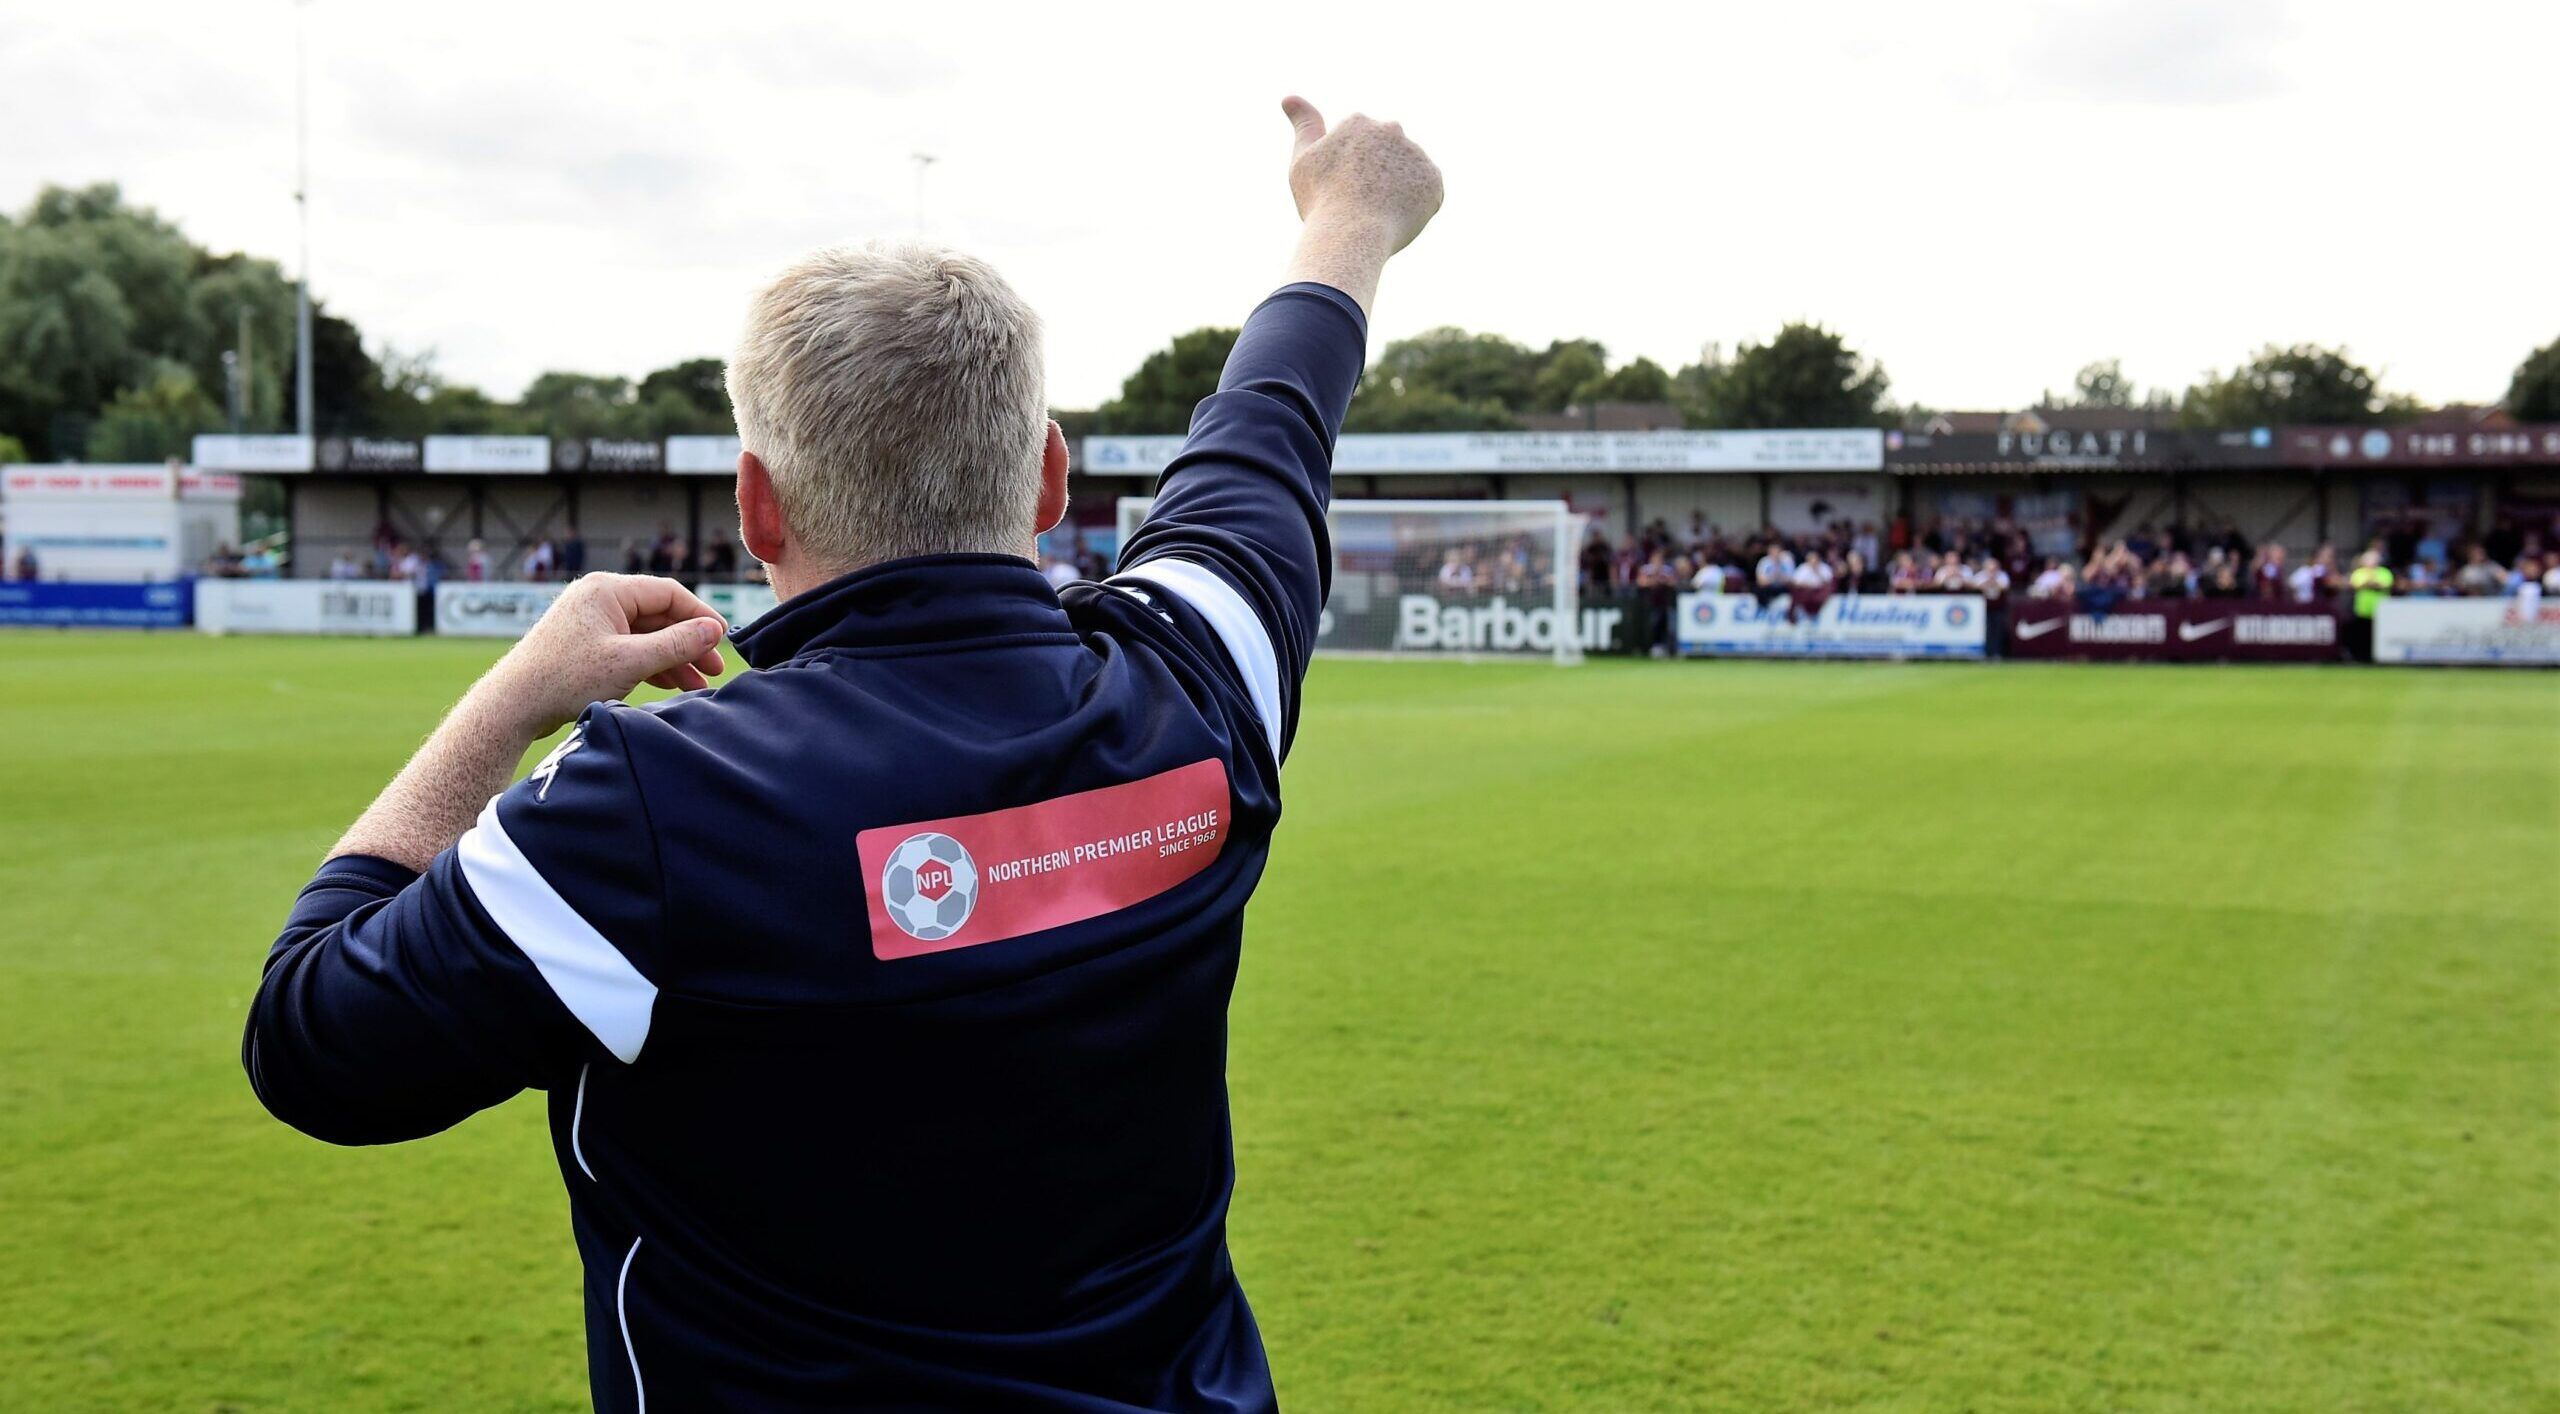 Match Preview: South Shields vs FC United, The Pitching In Northern Premier League